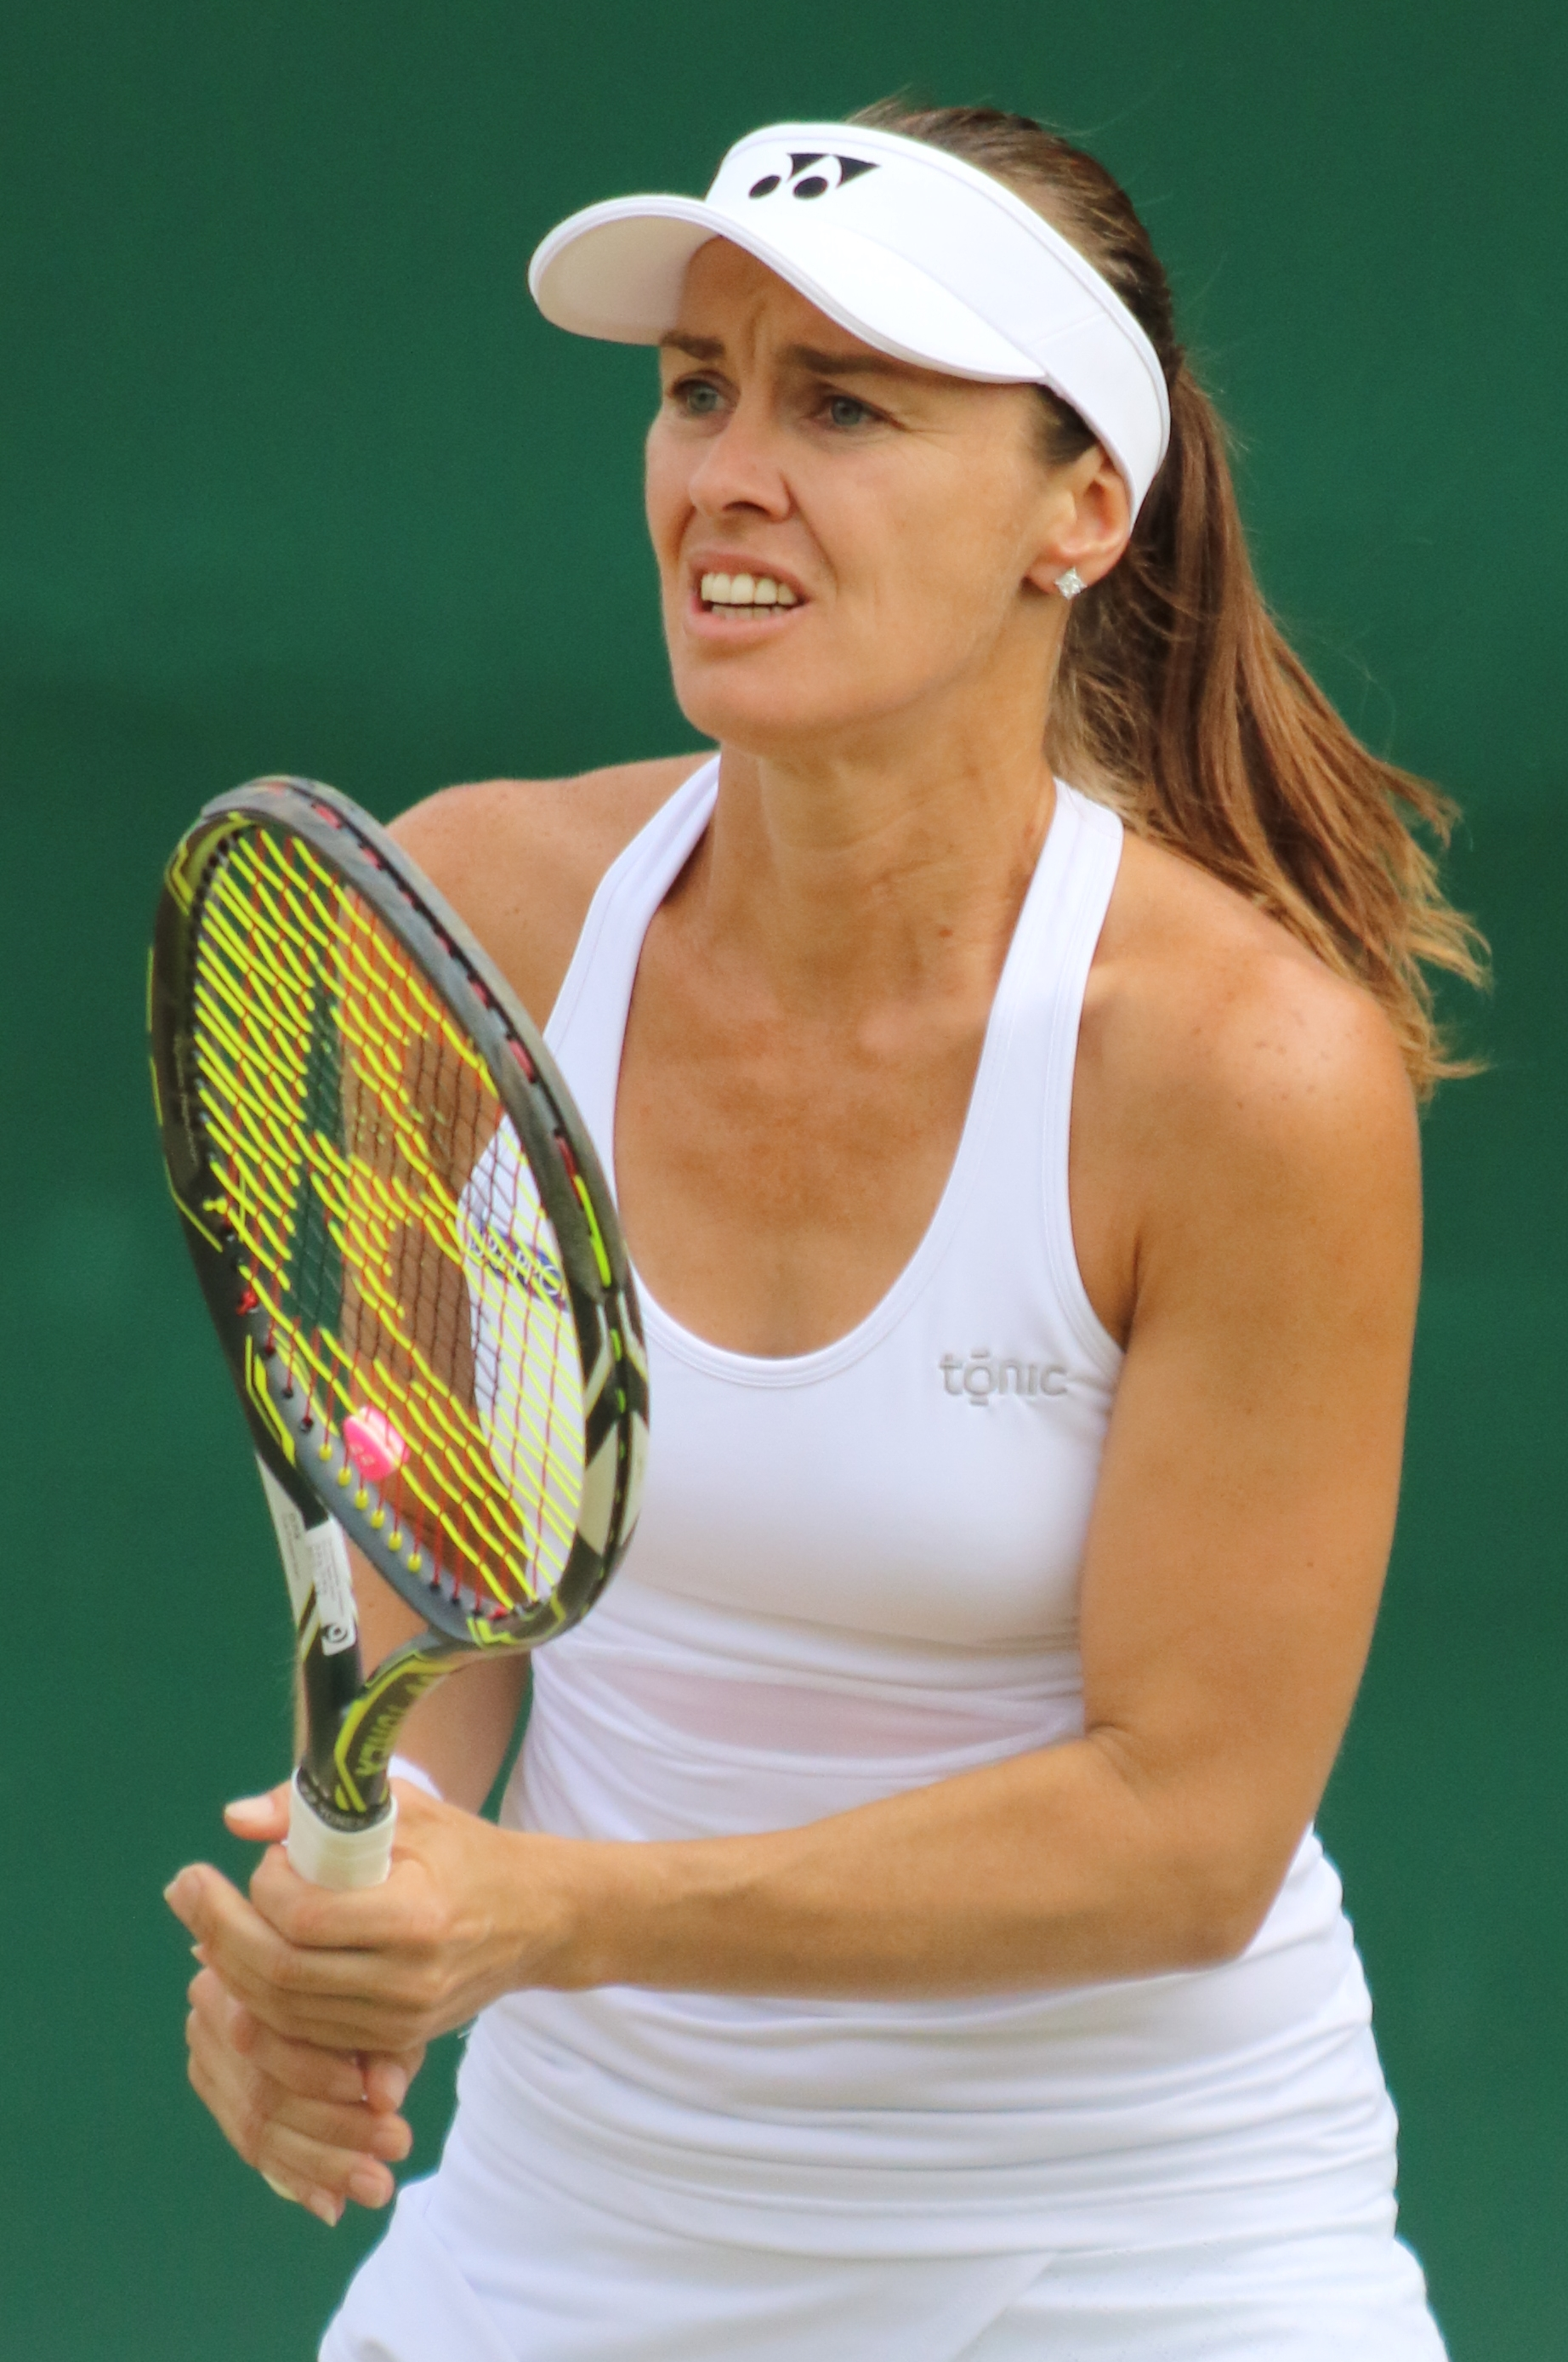 Martina Hingis 5 Grand Slam singles titles